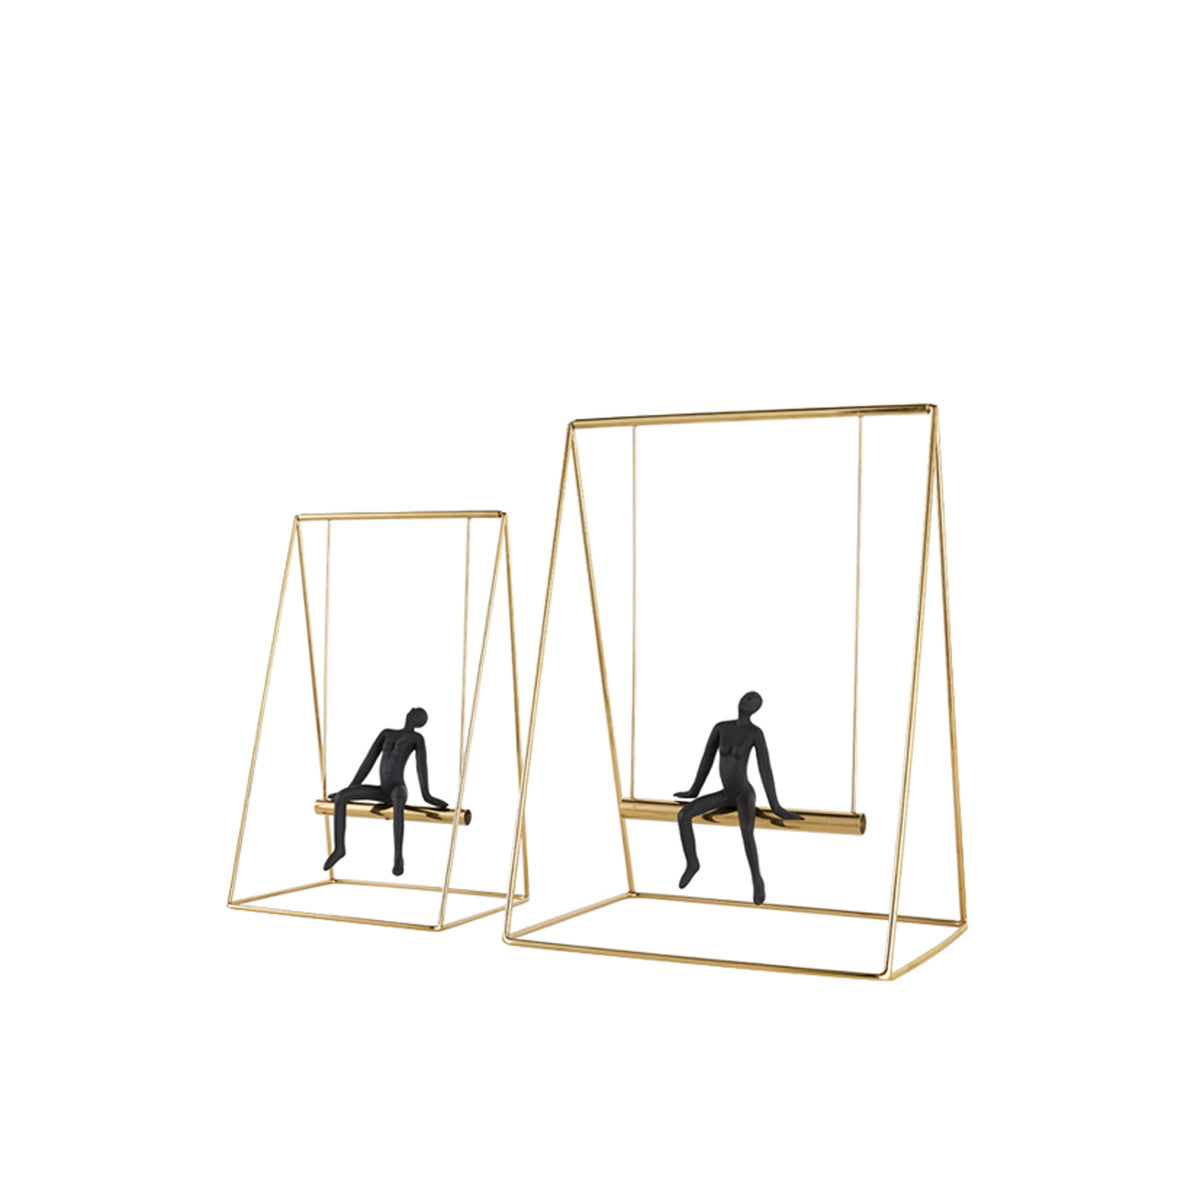 Man on Swing - objects of interest